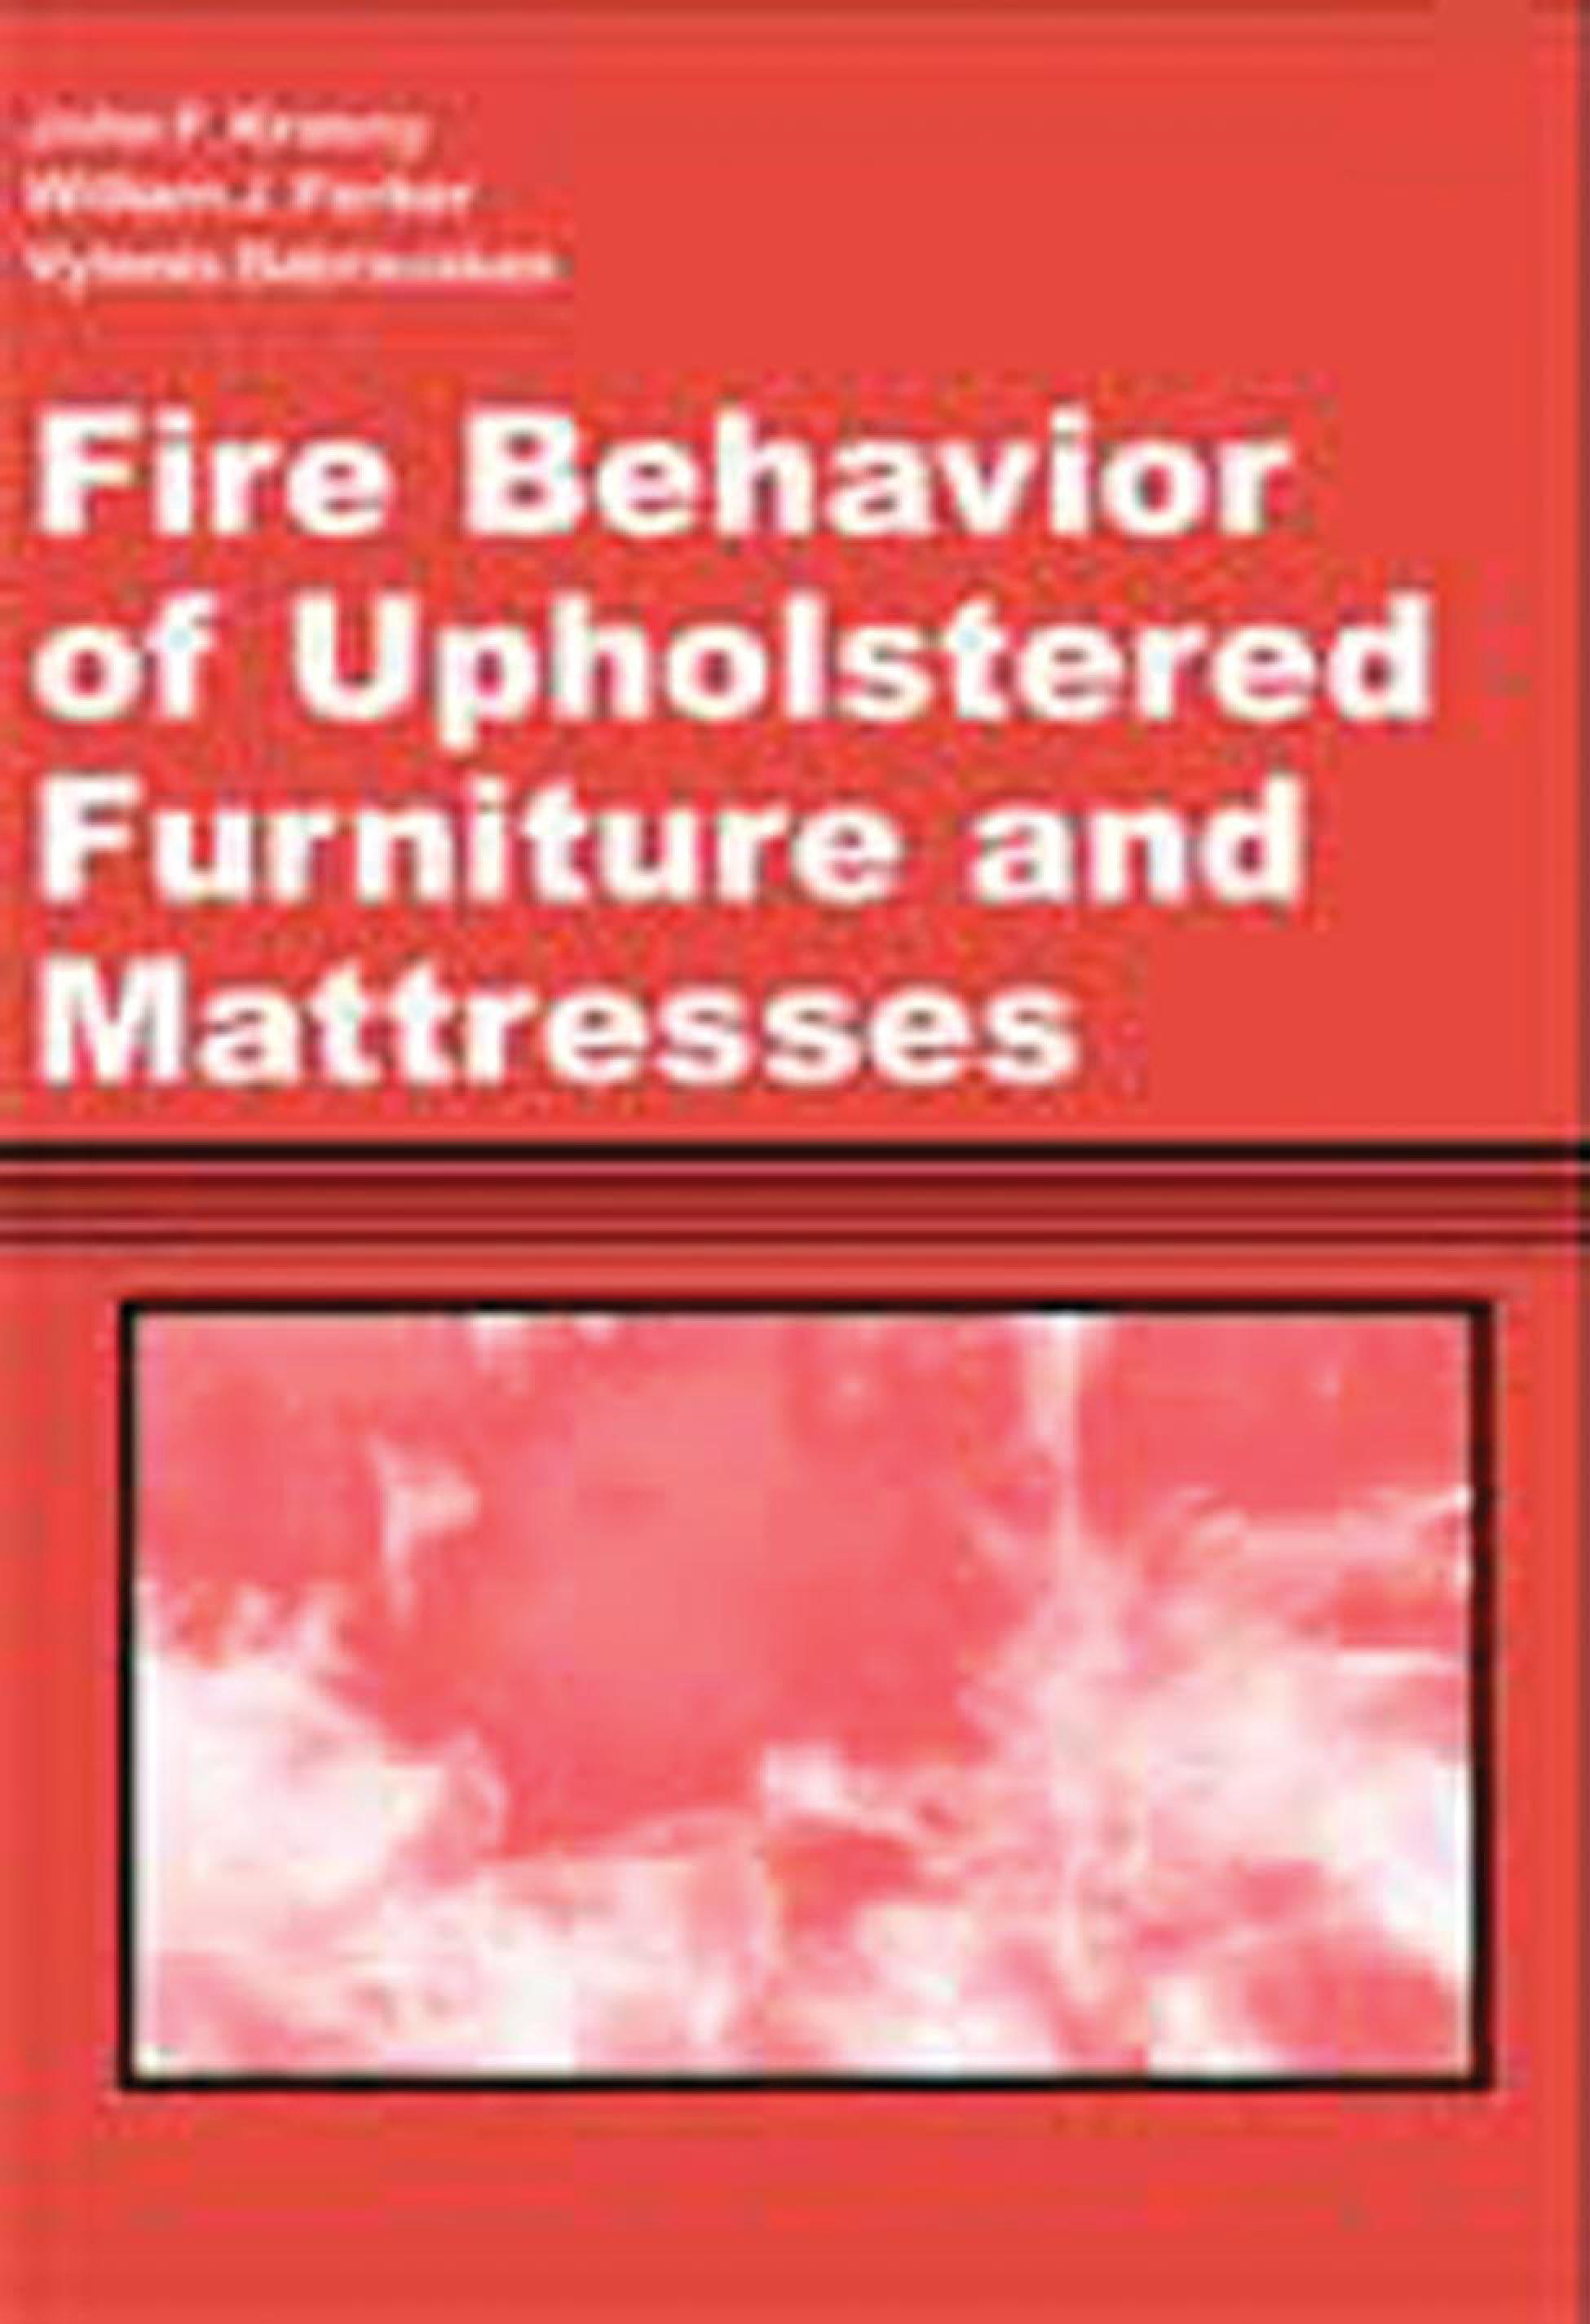 Fire Behavior of Upholstered Furniture and Mattresses EB9780815517207